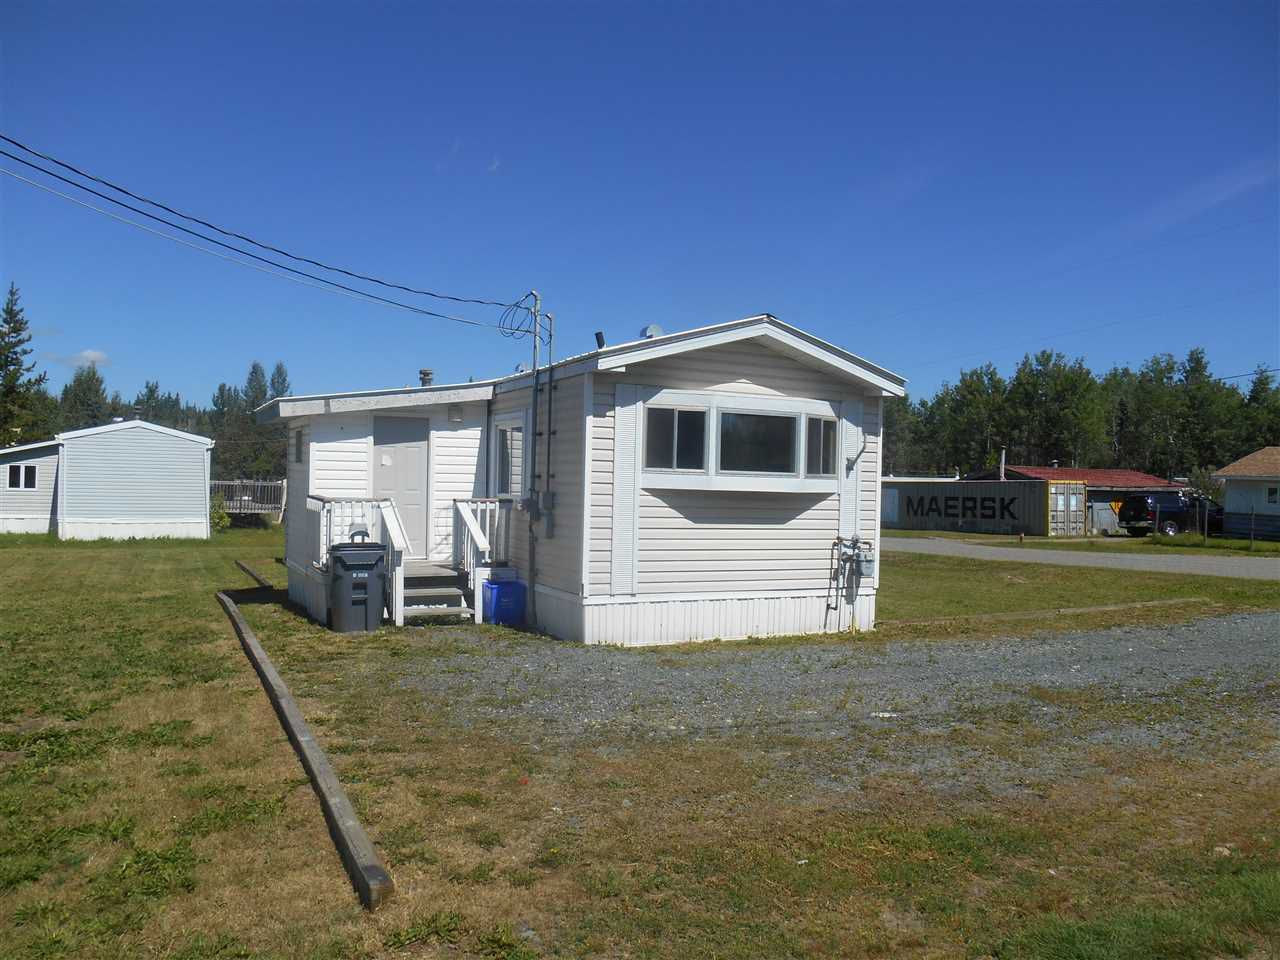 Main Photo: 2147 E MCLAREN Road in Prince George: North Blackburn Manufactured Home for sale (PG City South East (Zone 75))  : MLS®# R2193244